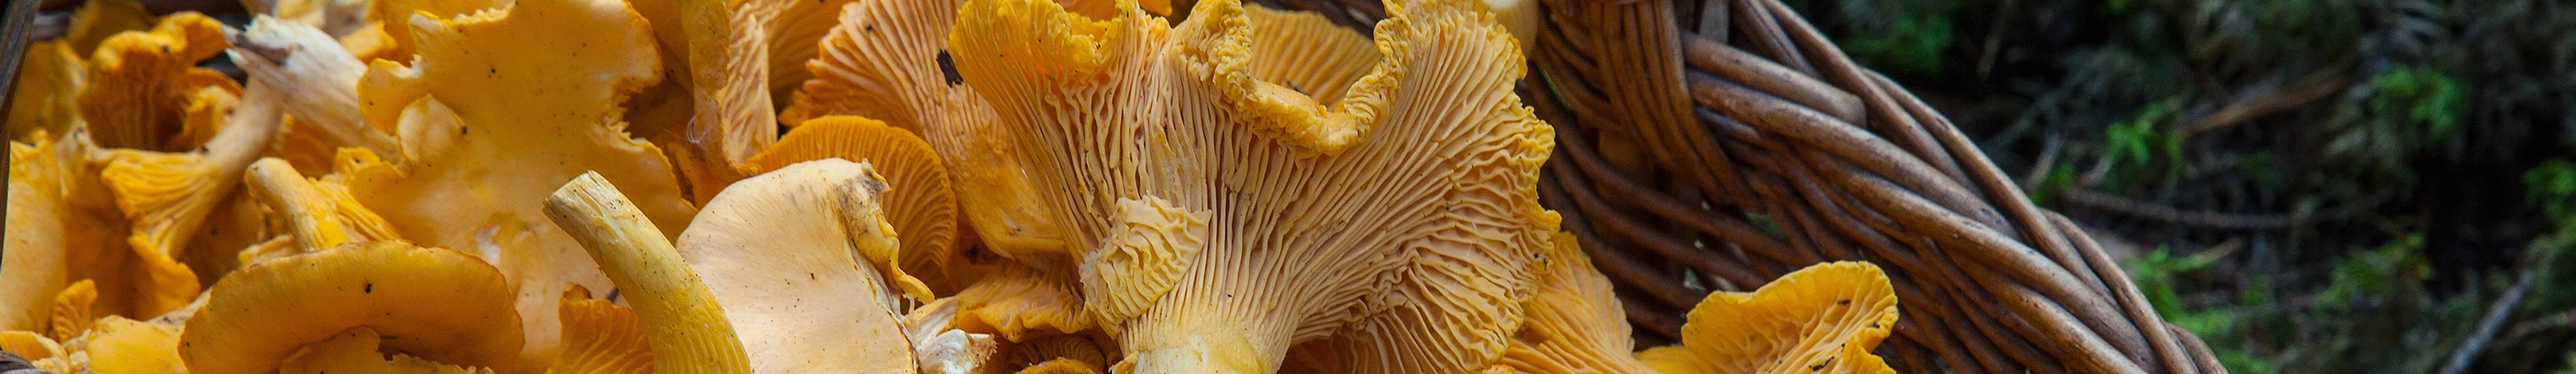 Where and How to Pick Mushrooms - Vancouver Mycological Society